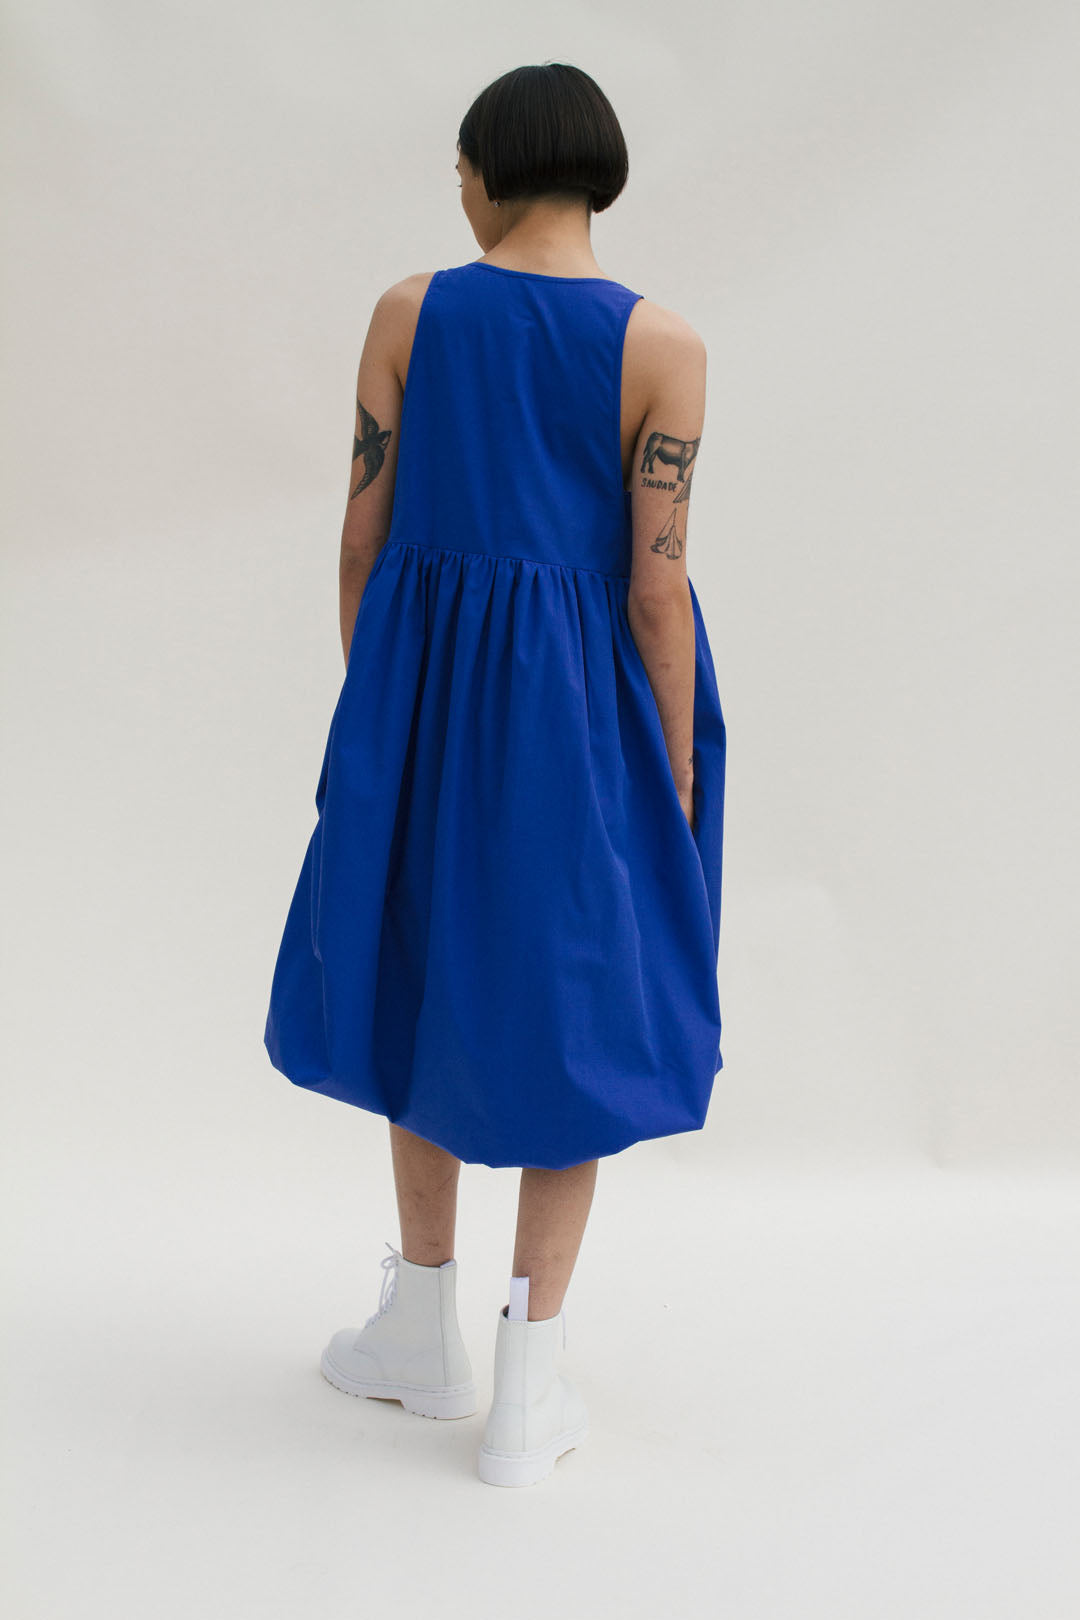 bright blue oversized bubble hem sleeveless dress made in cotton poplin, square neckline geometric-pieced bodice, side pockets and gathered empire waist, falls just below the knee, 100% cotton, made in NYC and Seattle, model on grey background in blue dress with white dr. marten boots